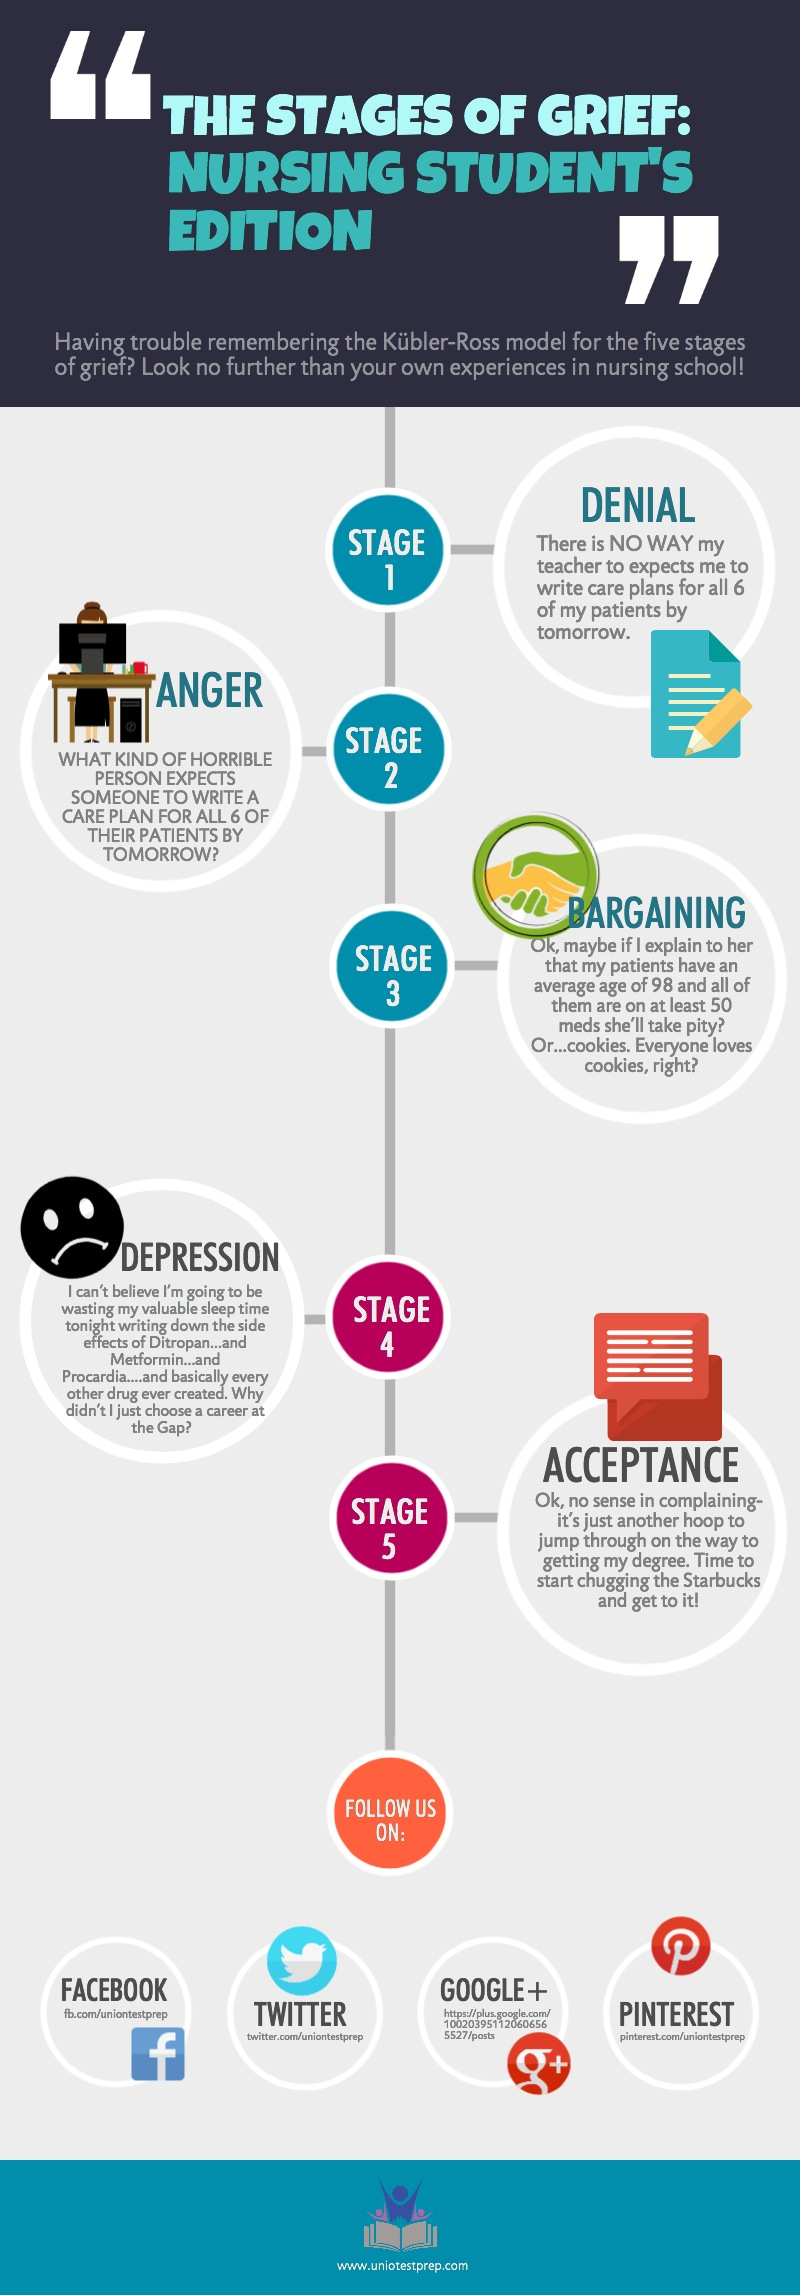 The 5 Stages of Grief: Nursing Student's Edition!